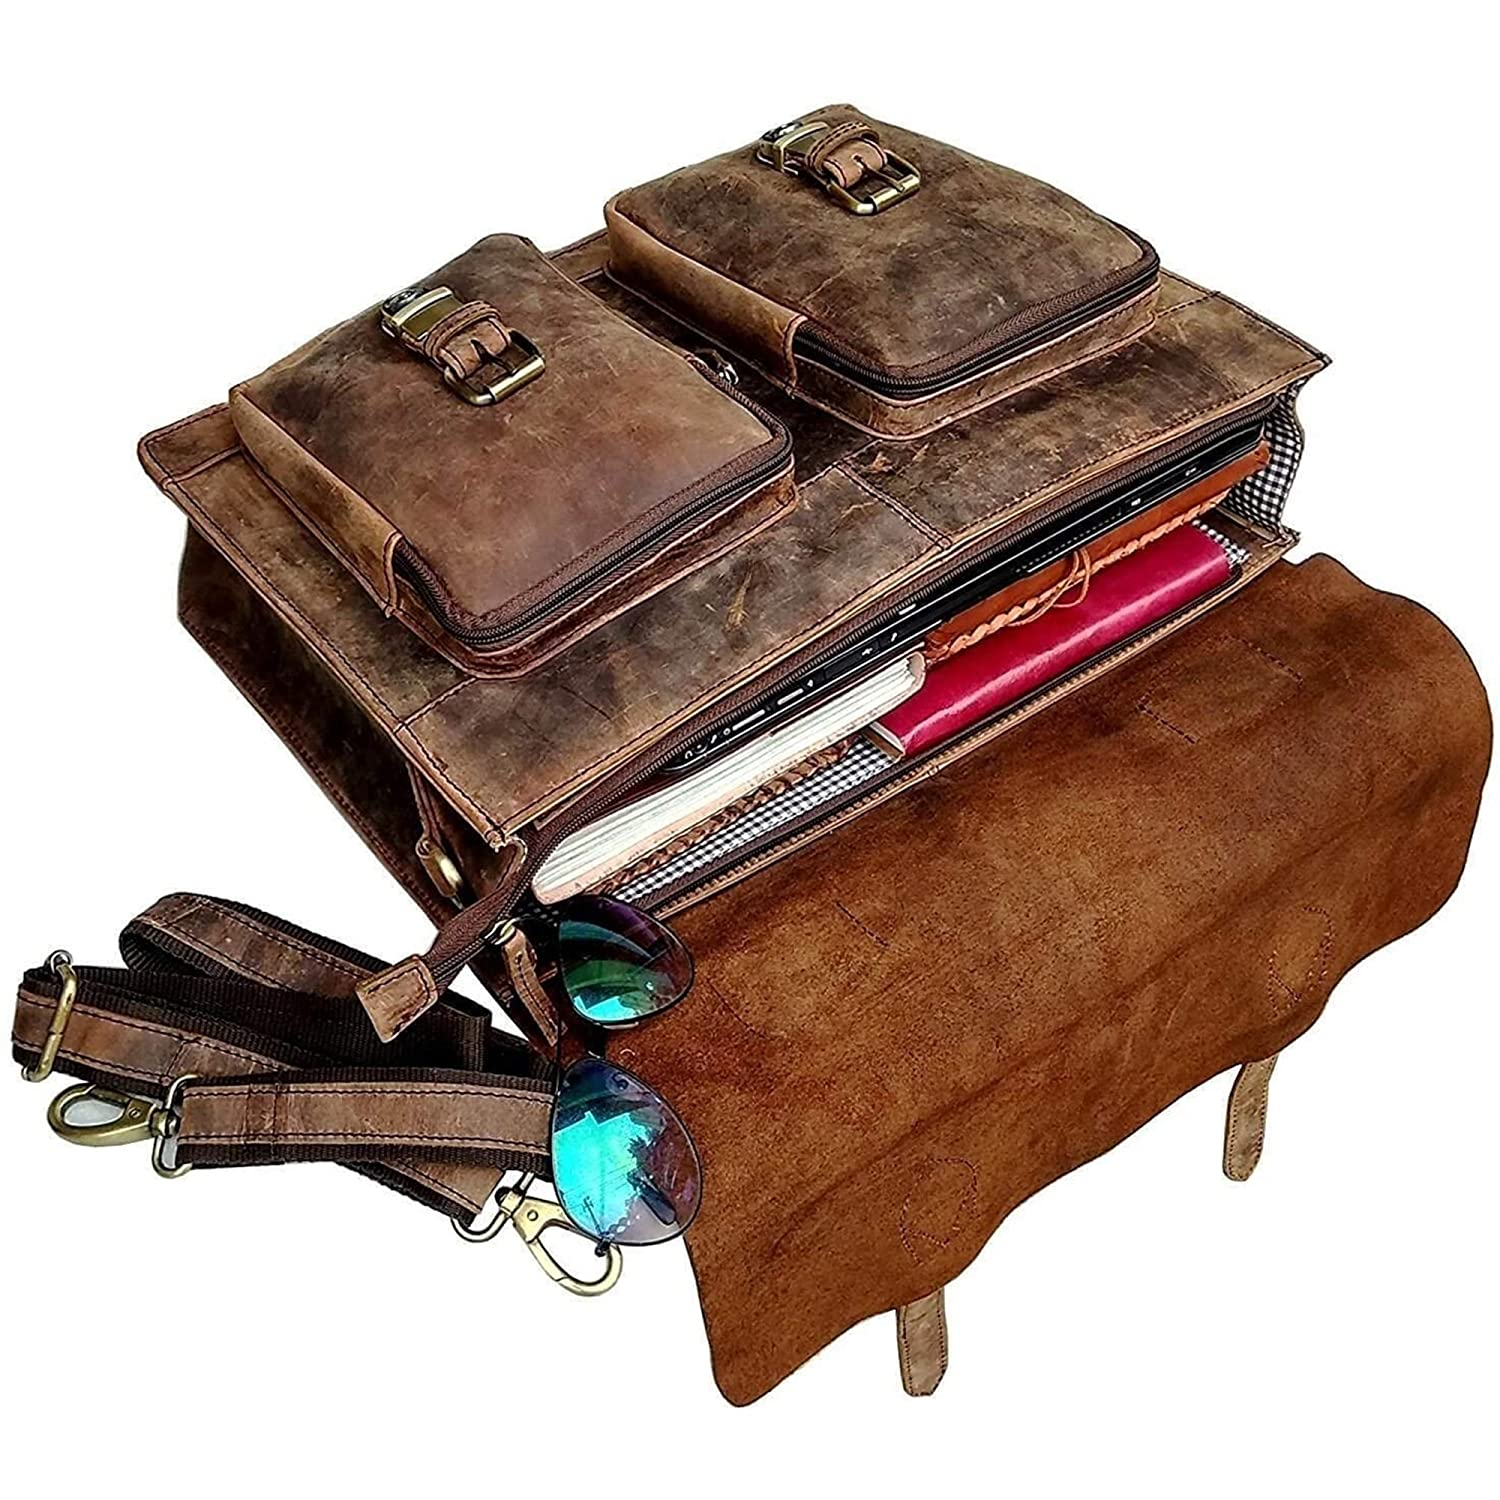 Retro Buffalo Hunter Leather Laptop Messenger Bag Office Briefcase College Bag by Urban Hide 18